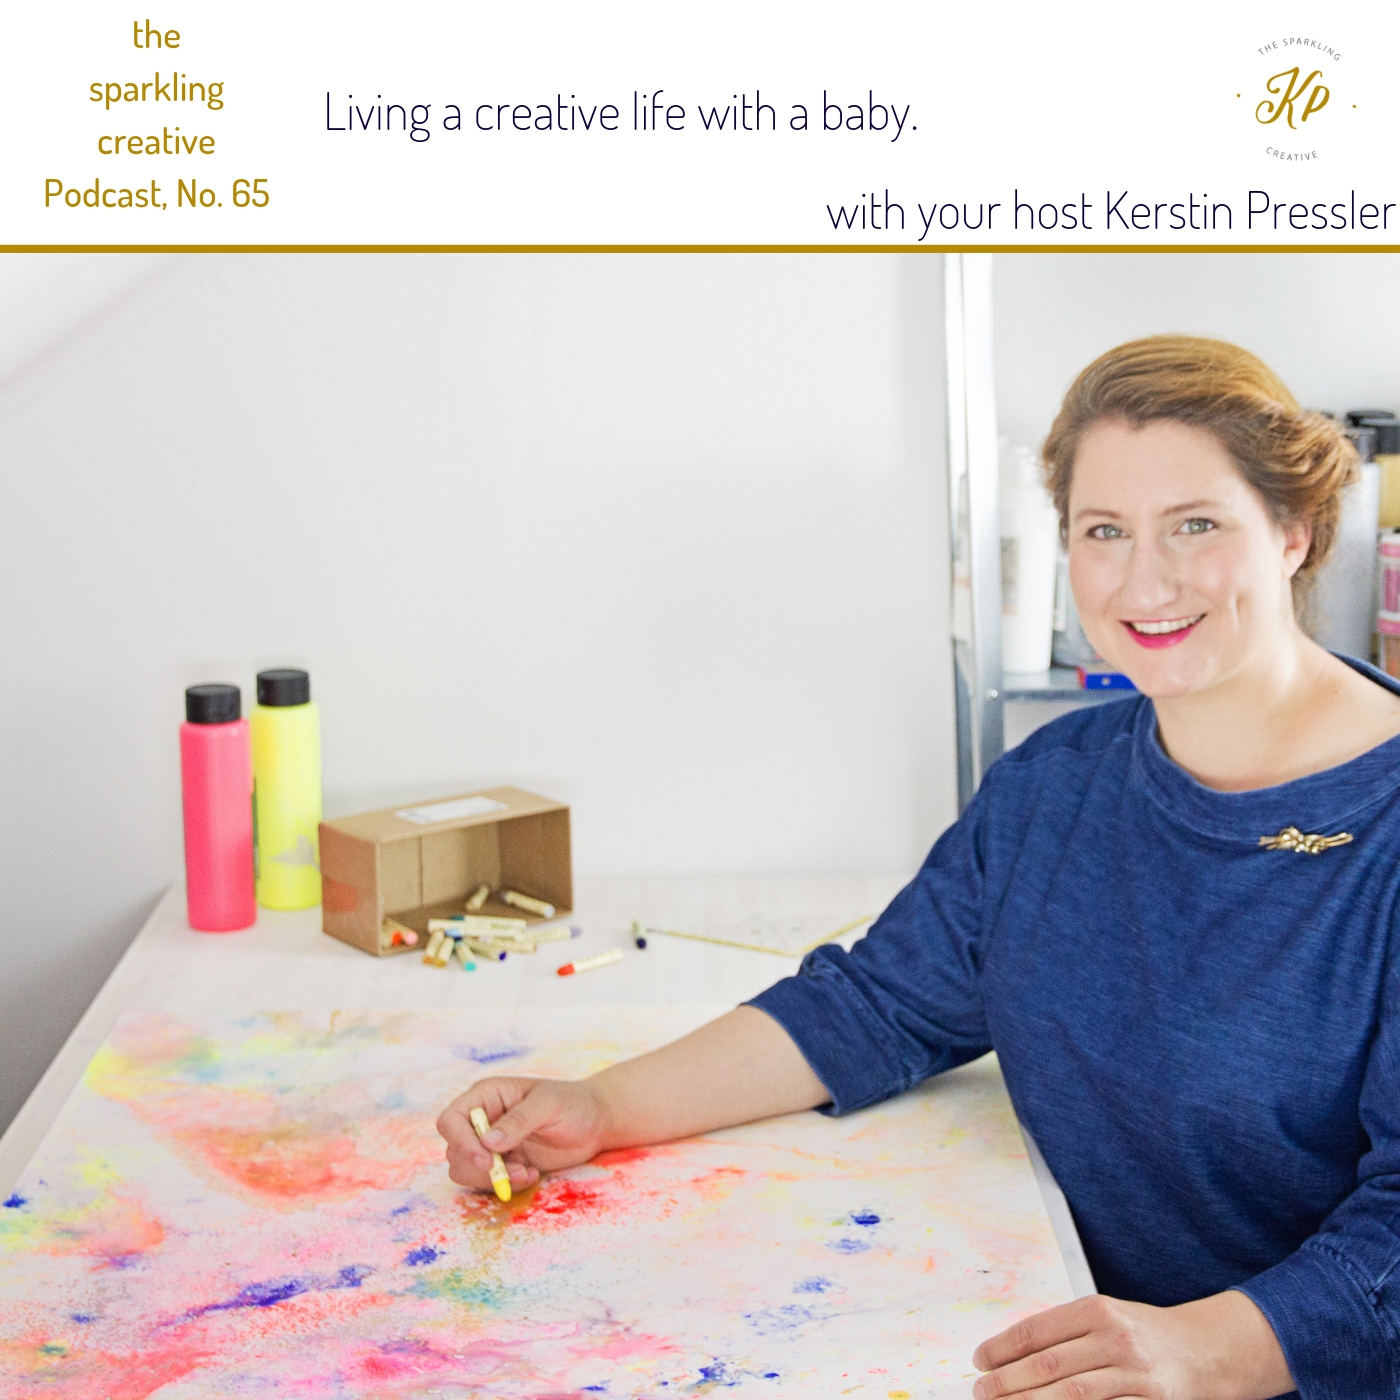 the sparkling creative Podcast, Episode 65: Living a creative life with a baby, www.kerstinpressler.com/blog-2/episode65